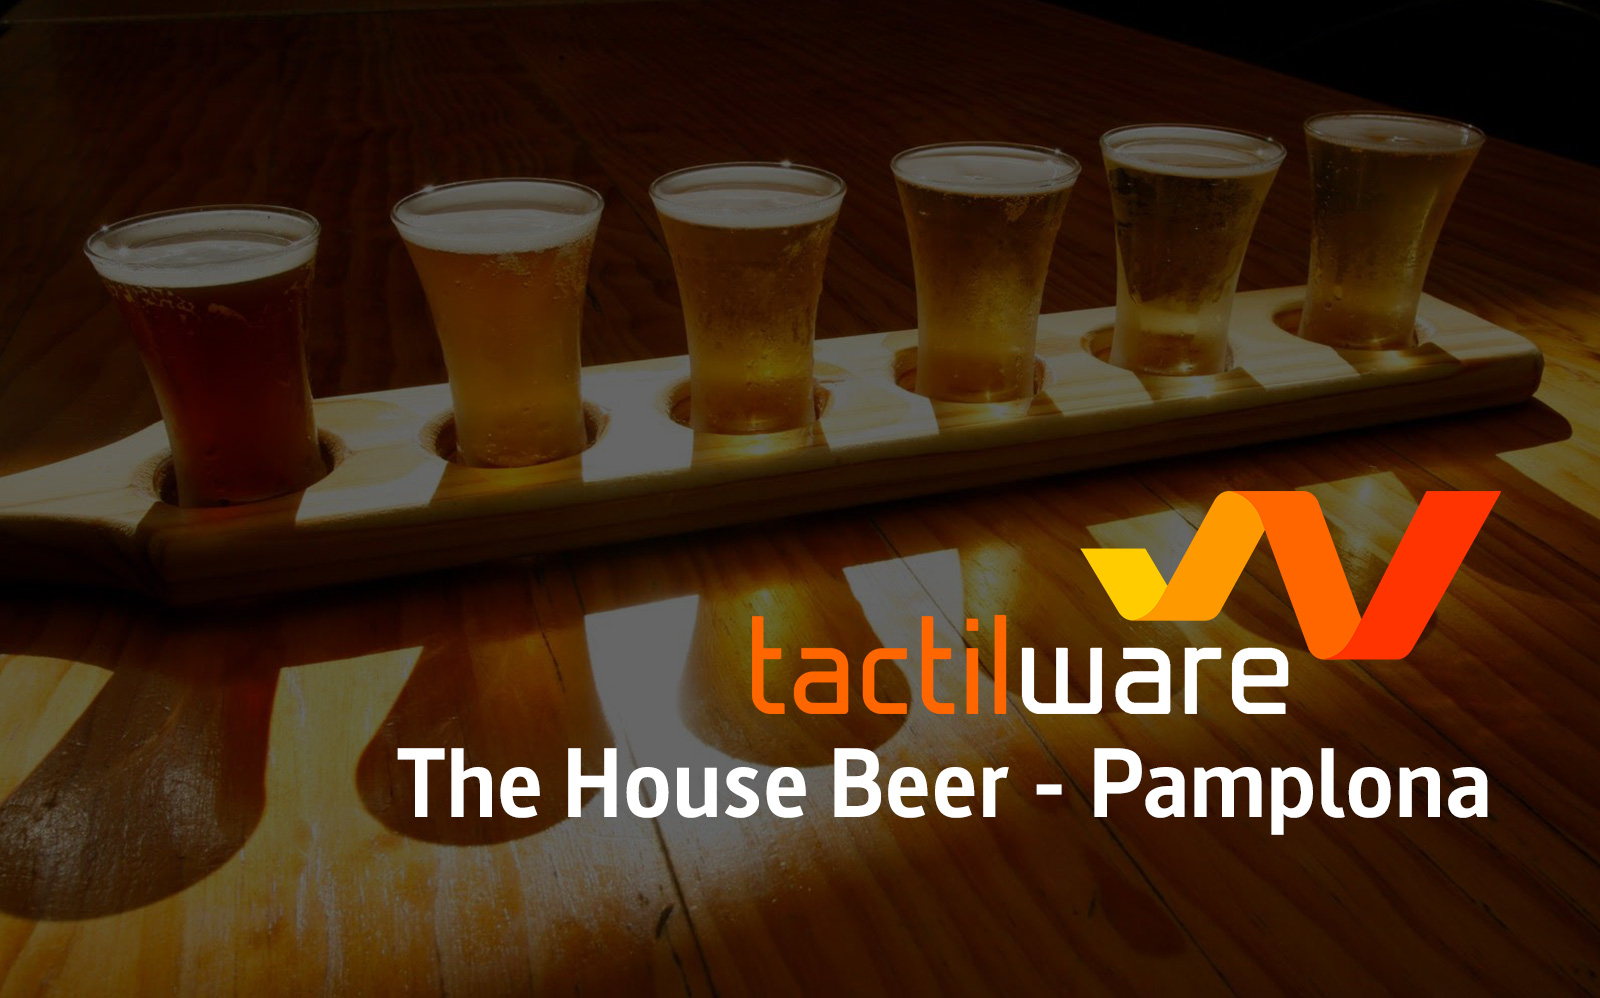 The House Beer Pamplona: como en casa cerveza en mano